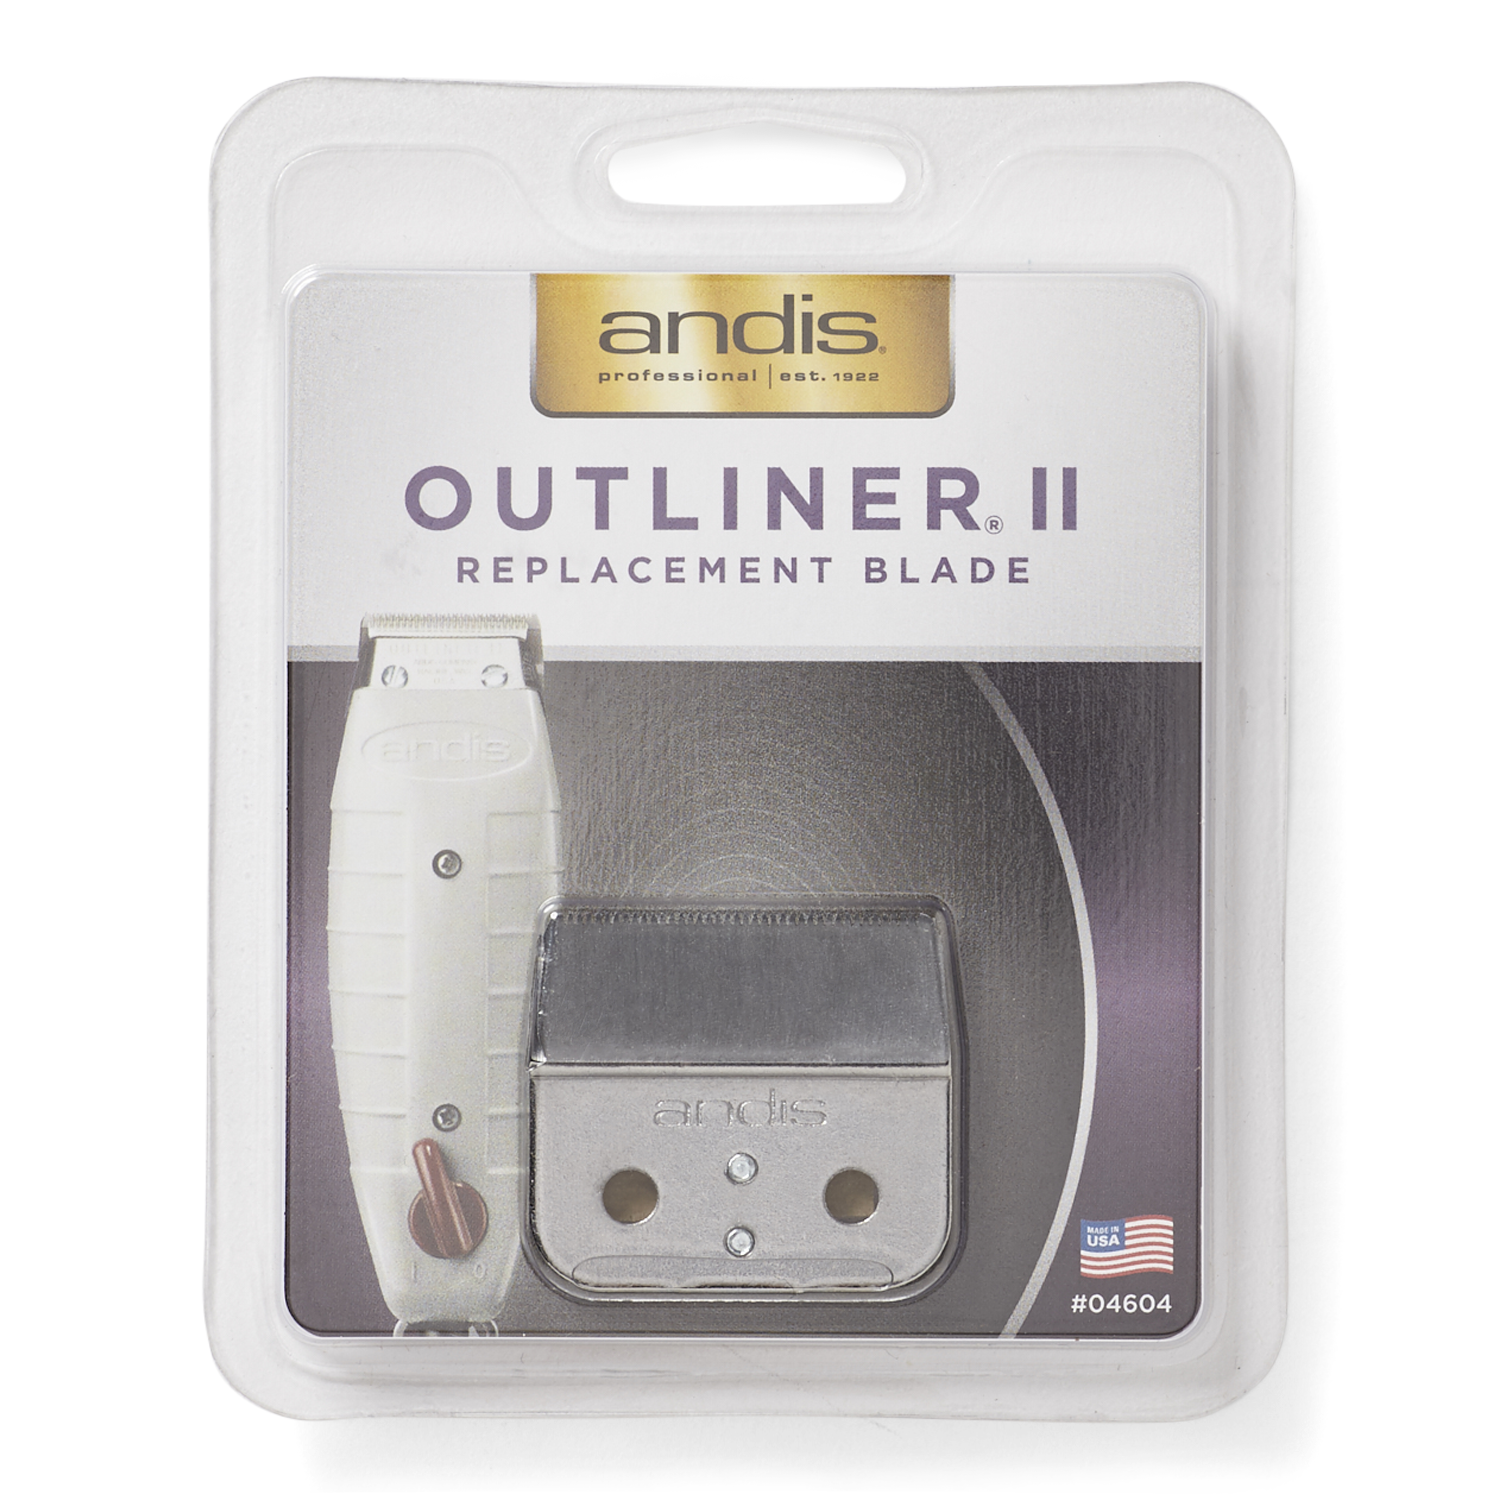 Sally Beauty coupon: Andis Outliner II Replacement Blade | Sally Beauty